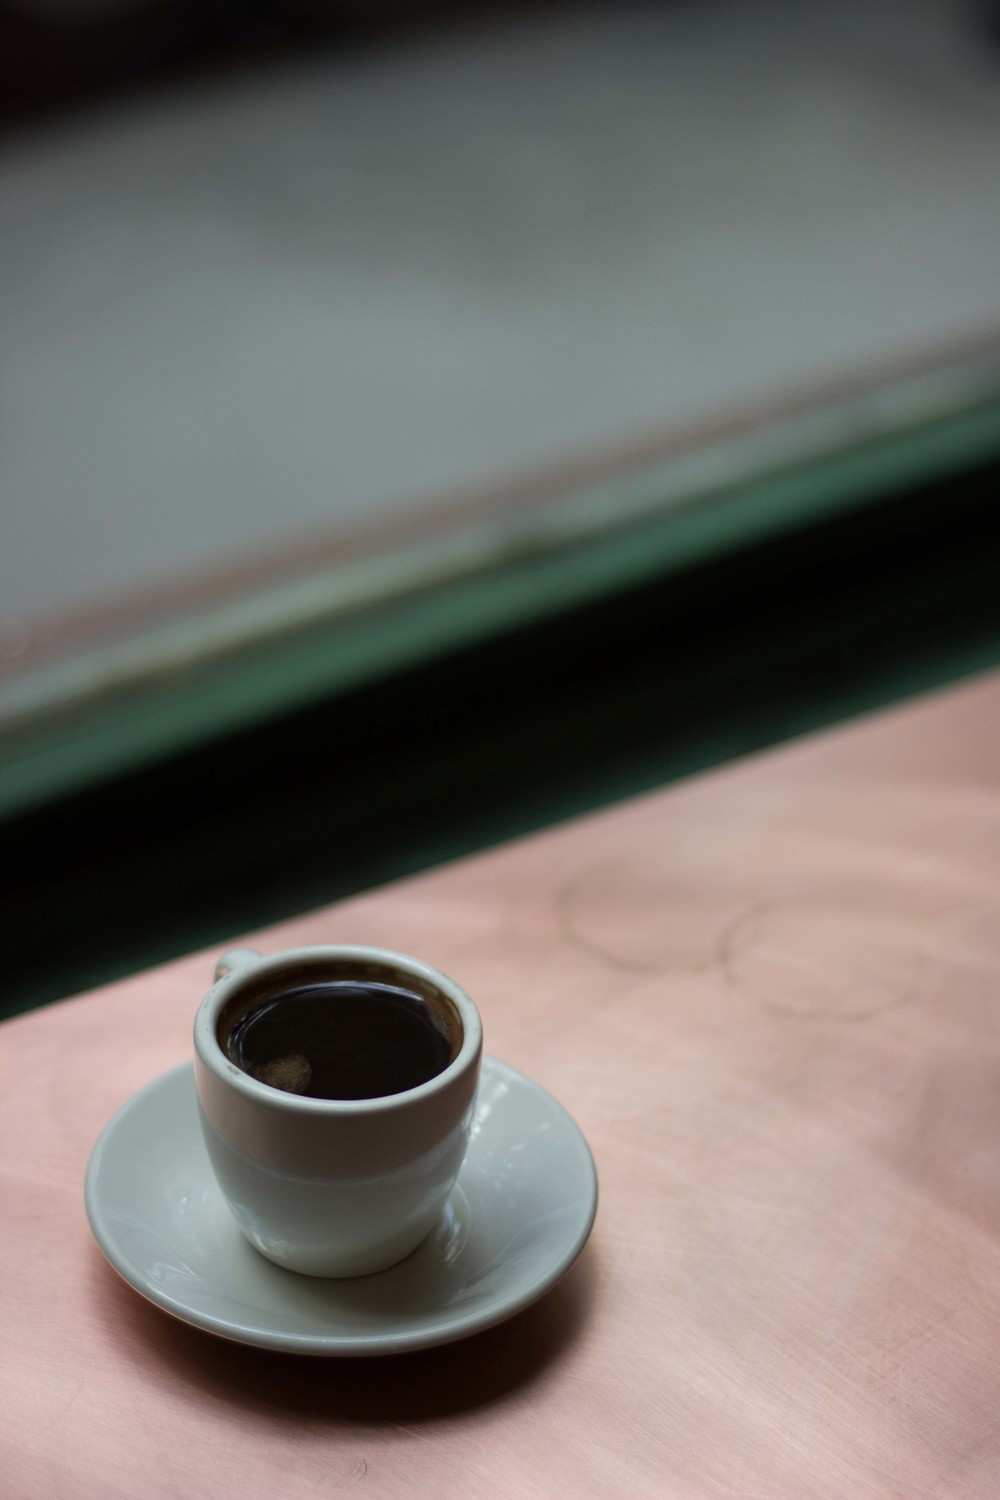 cafe moustache pitza turkish coffee new york west village walksmilesnap irra korrelat.jpg